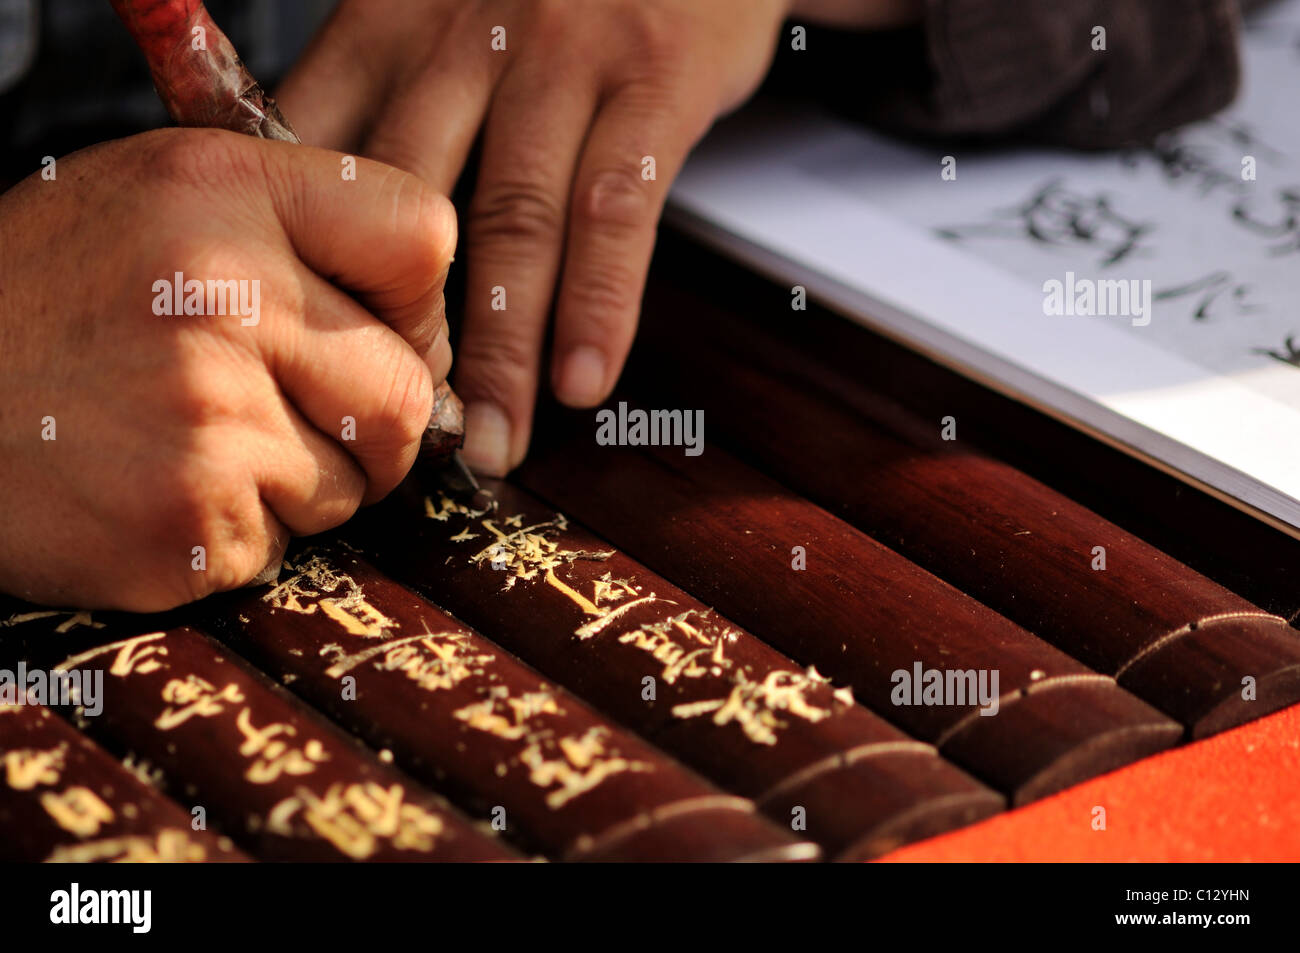 close-up of person carving chinese characters - Stock Image